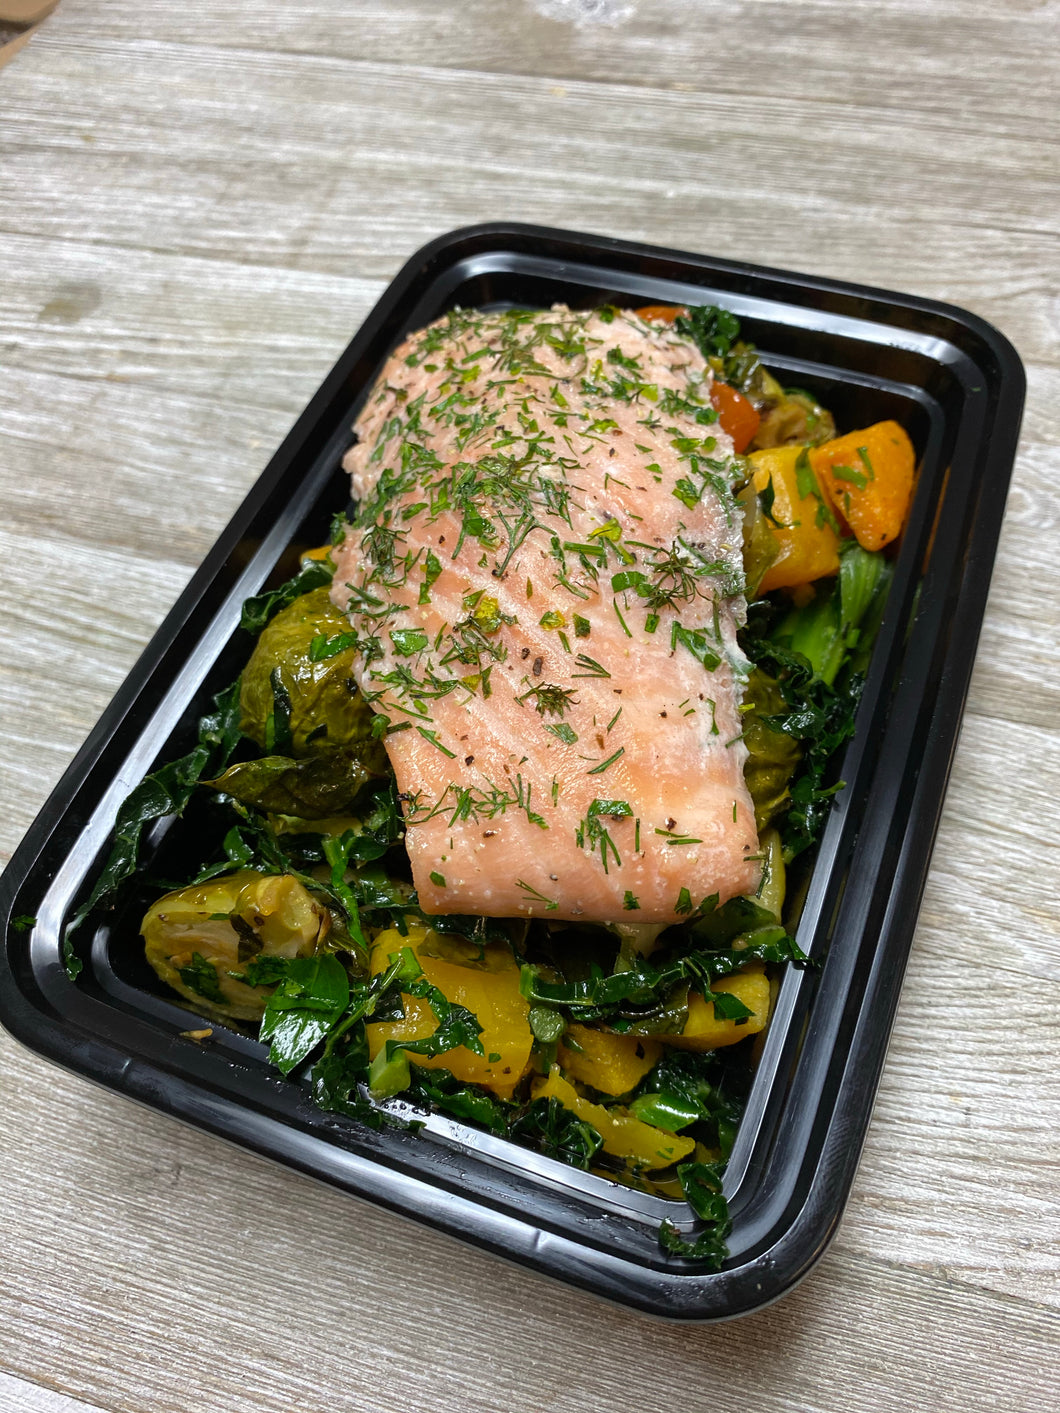 Lemon dill roasted salmon w/ roasted veggies & kale